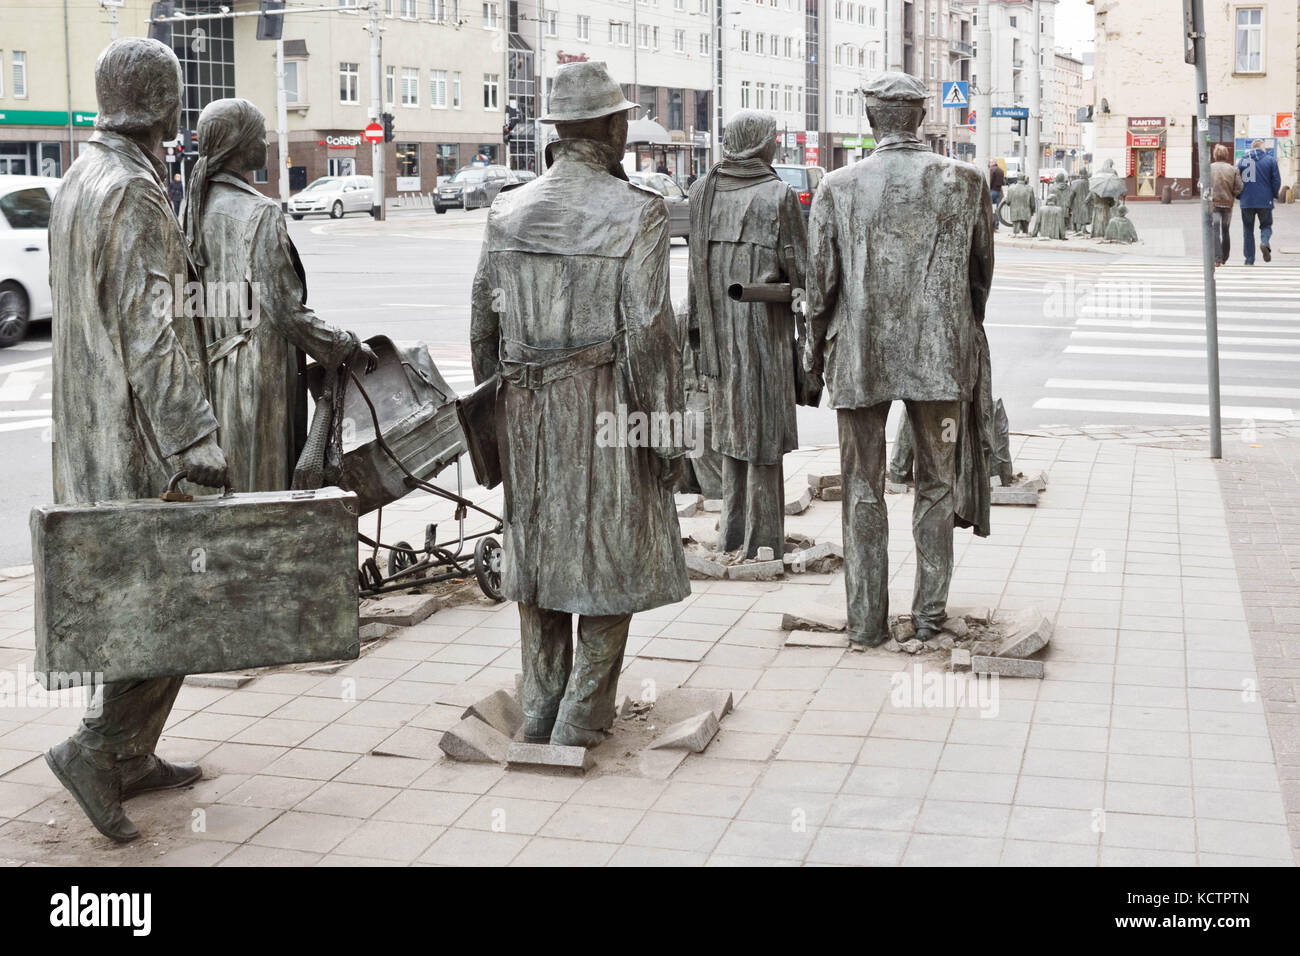 March 1, 2015 - Wroclaw, Poland: The Anonymous Pedestrians - memorial to the introduction of martial law in Poland. - Stock Image